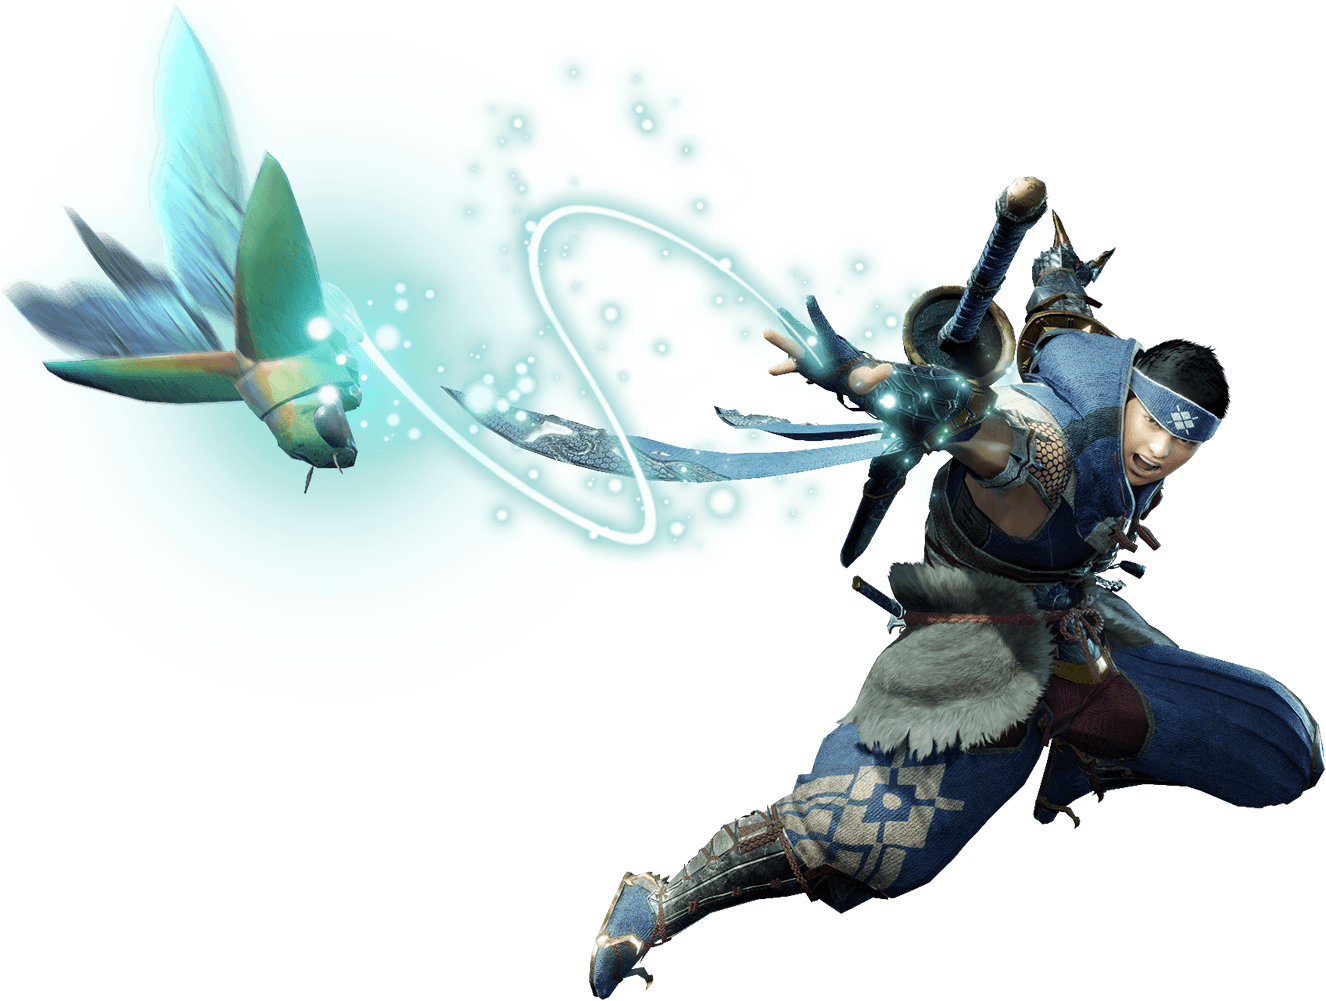 MonsterHunterRise_Overview_NewWays_Character_Wirebug_01.png